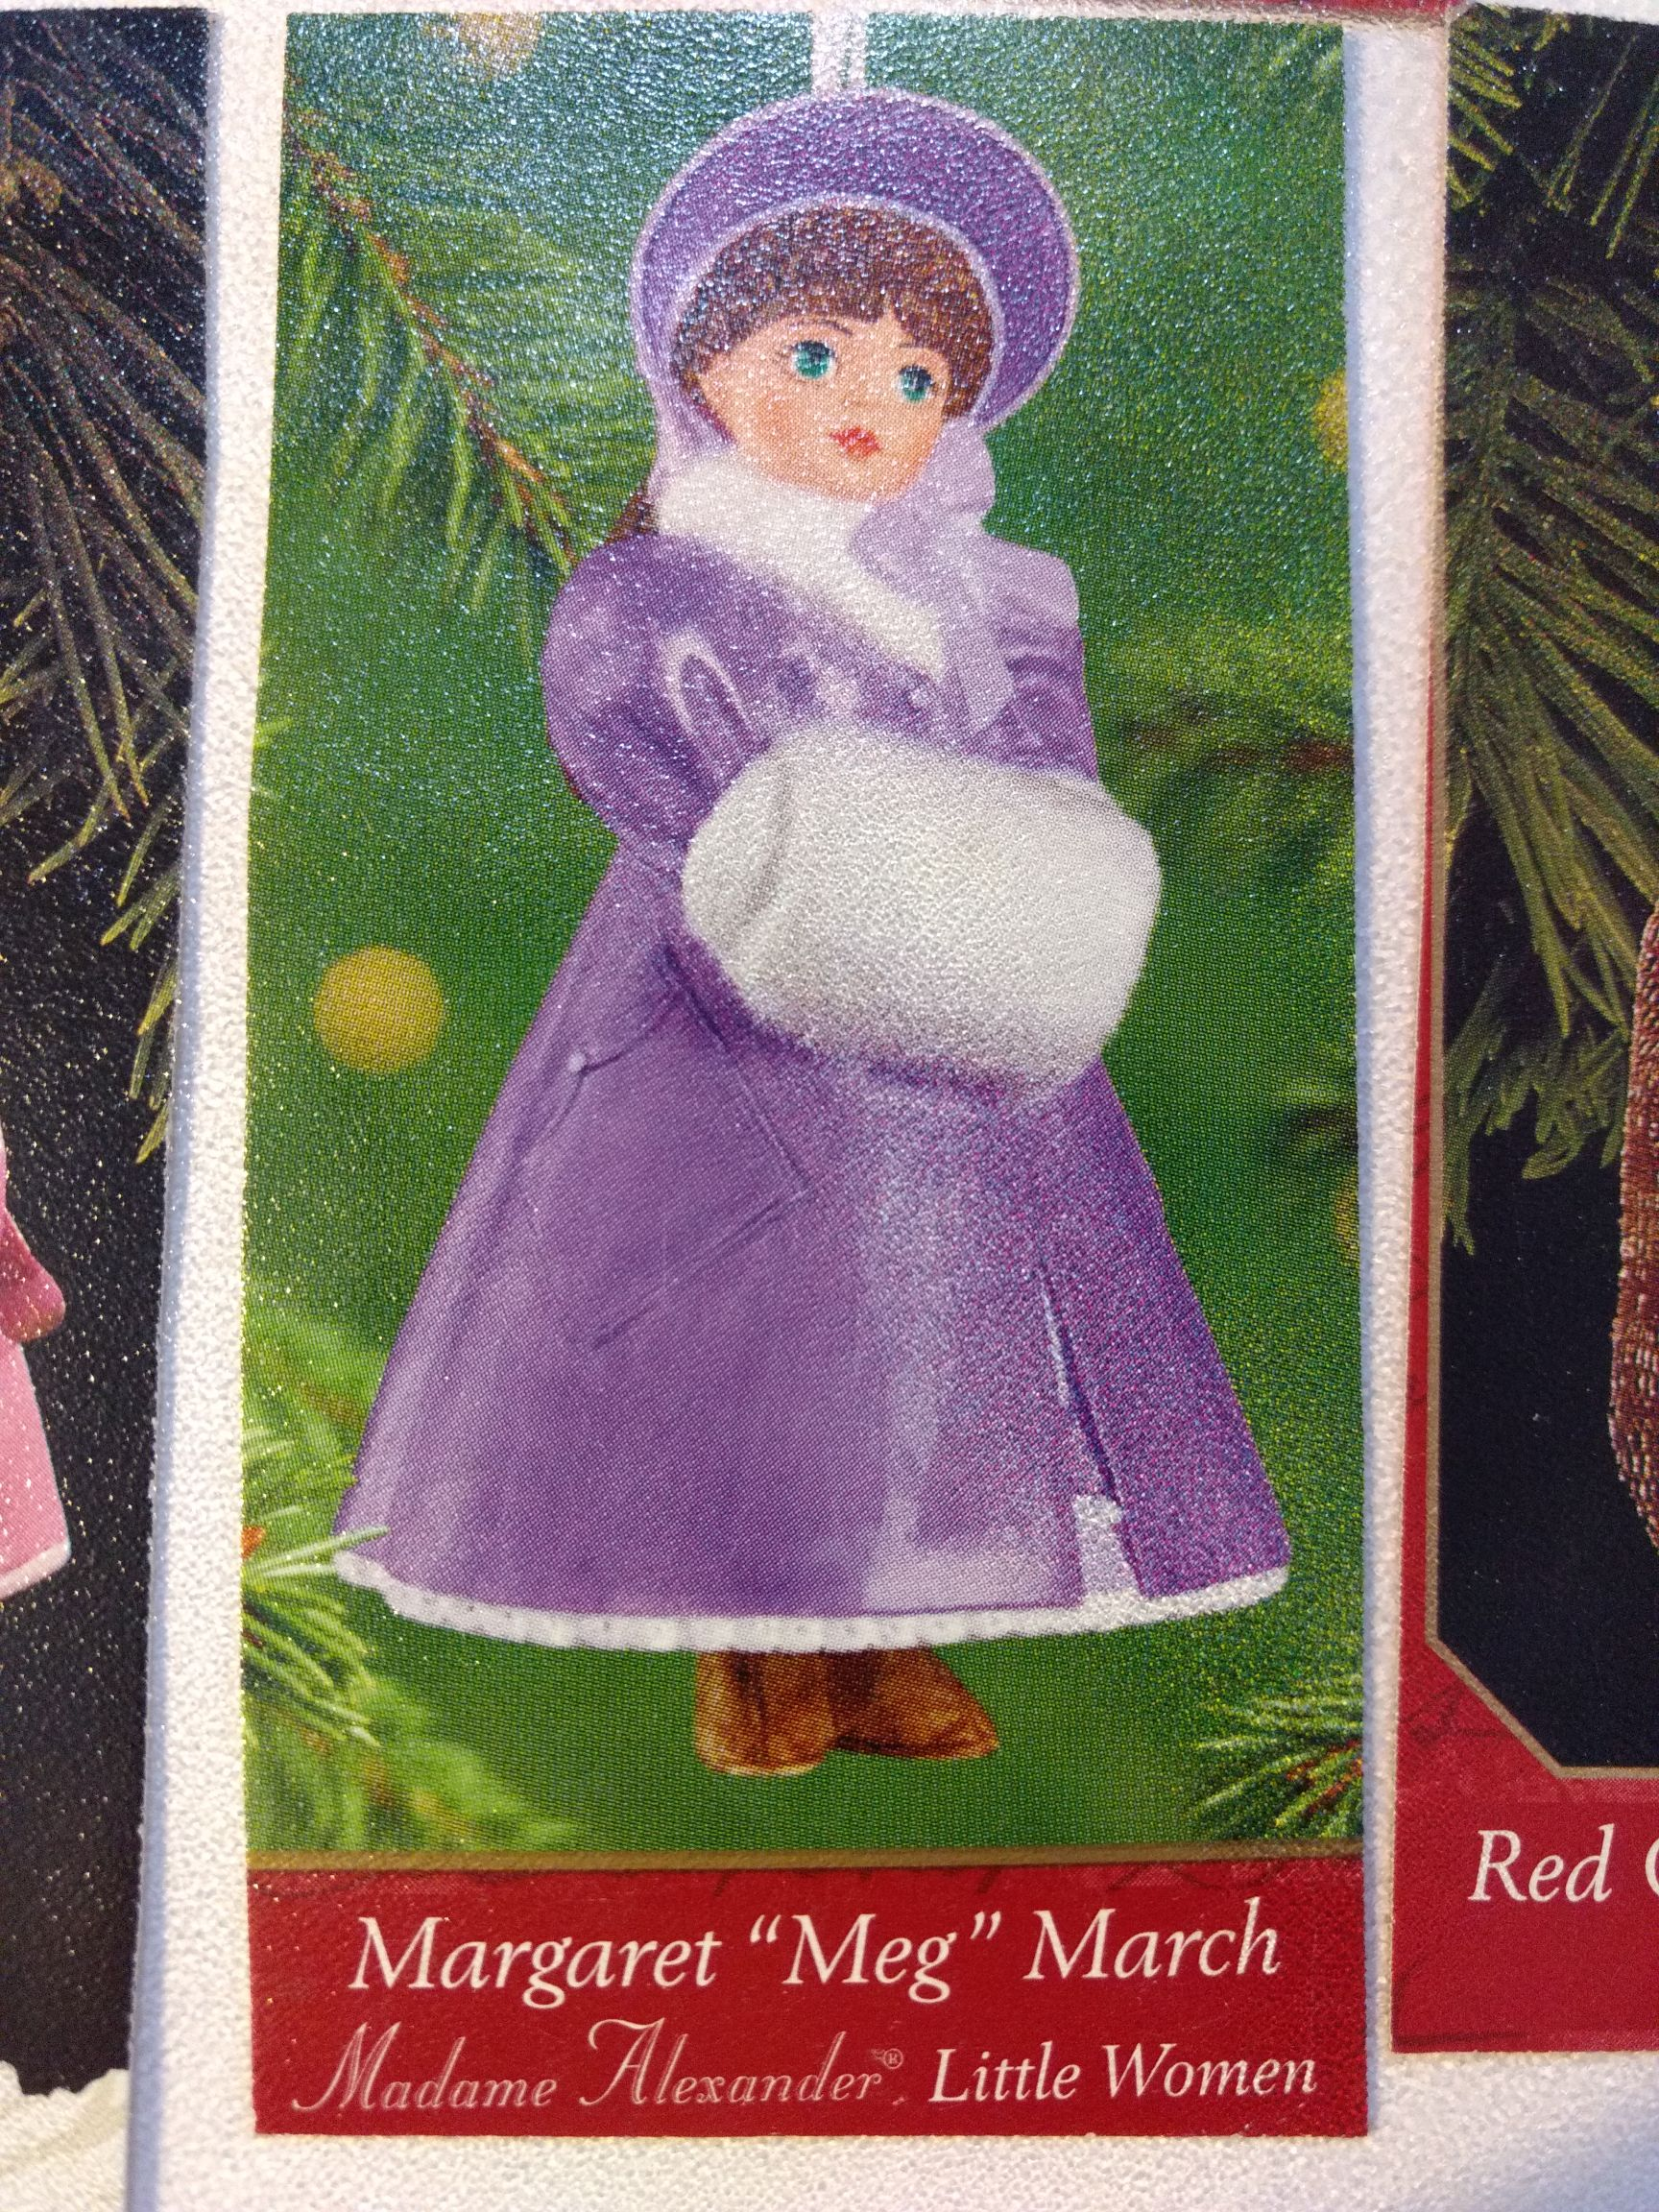 Madam Alexander - Margaret Meg March - Little Women Ornament - Hallmark front image (front cover)